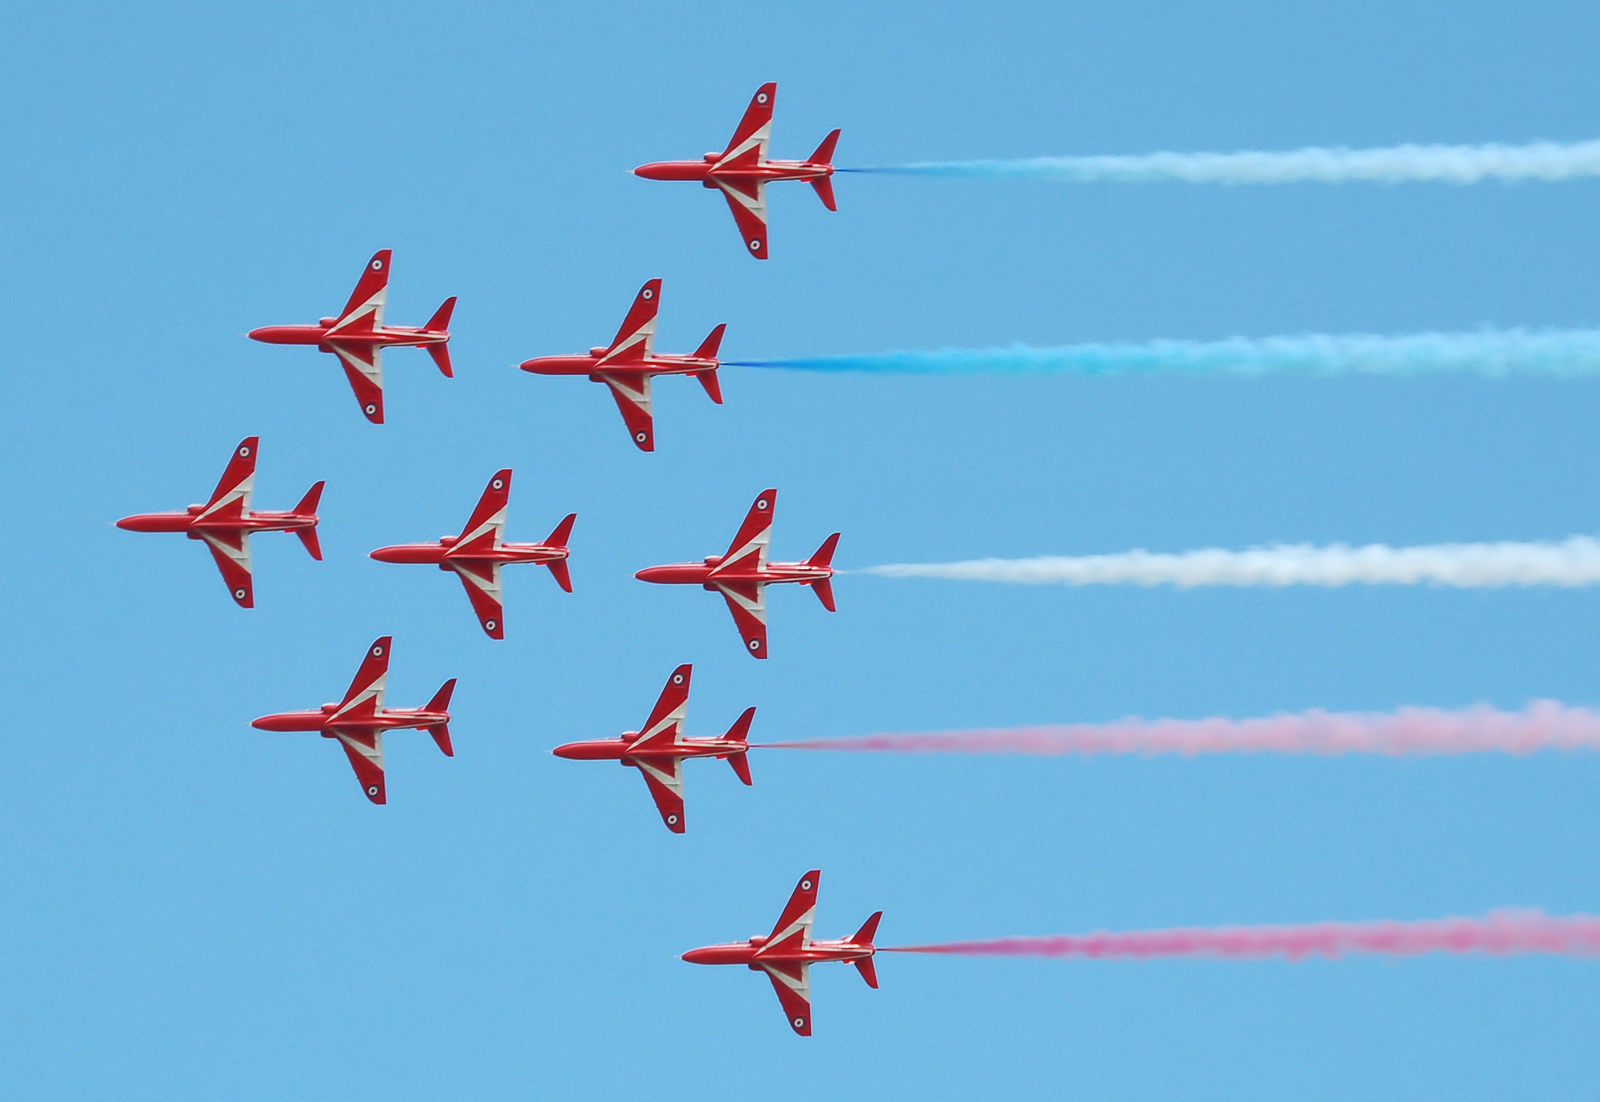 The Red Arrows in Apollo formation (2010)